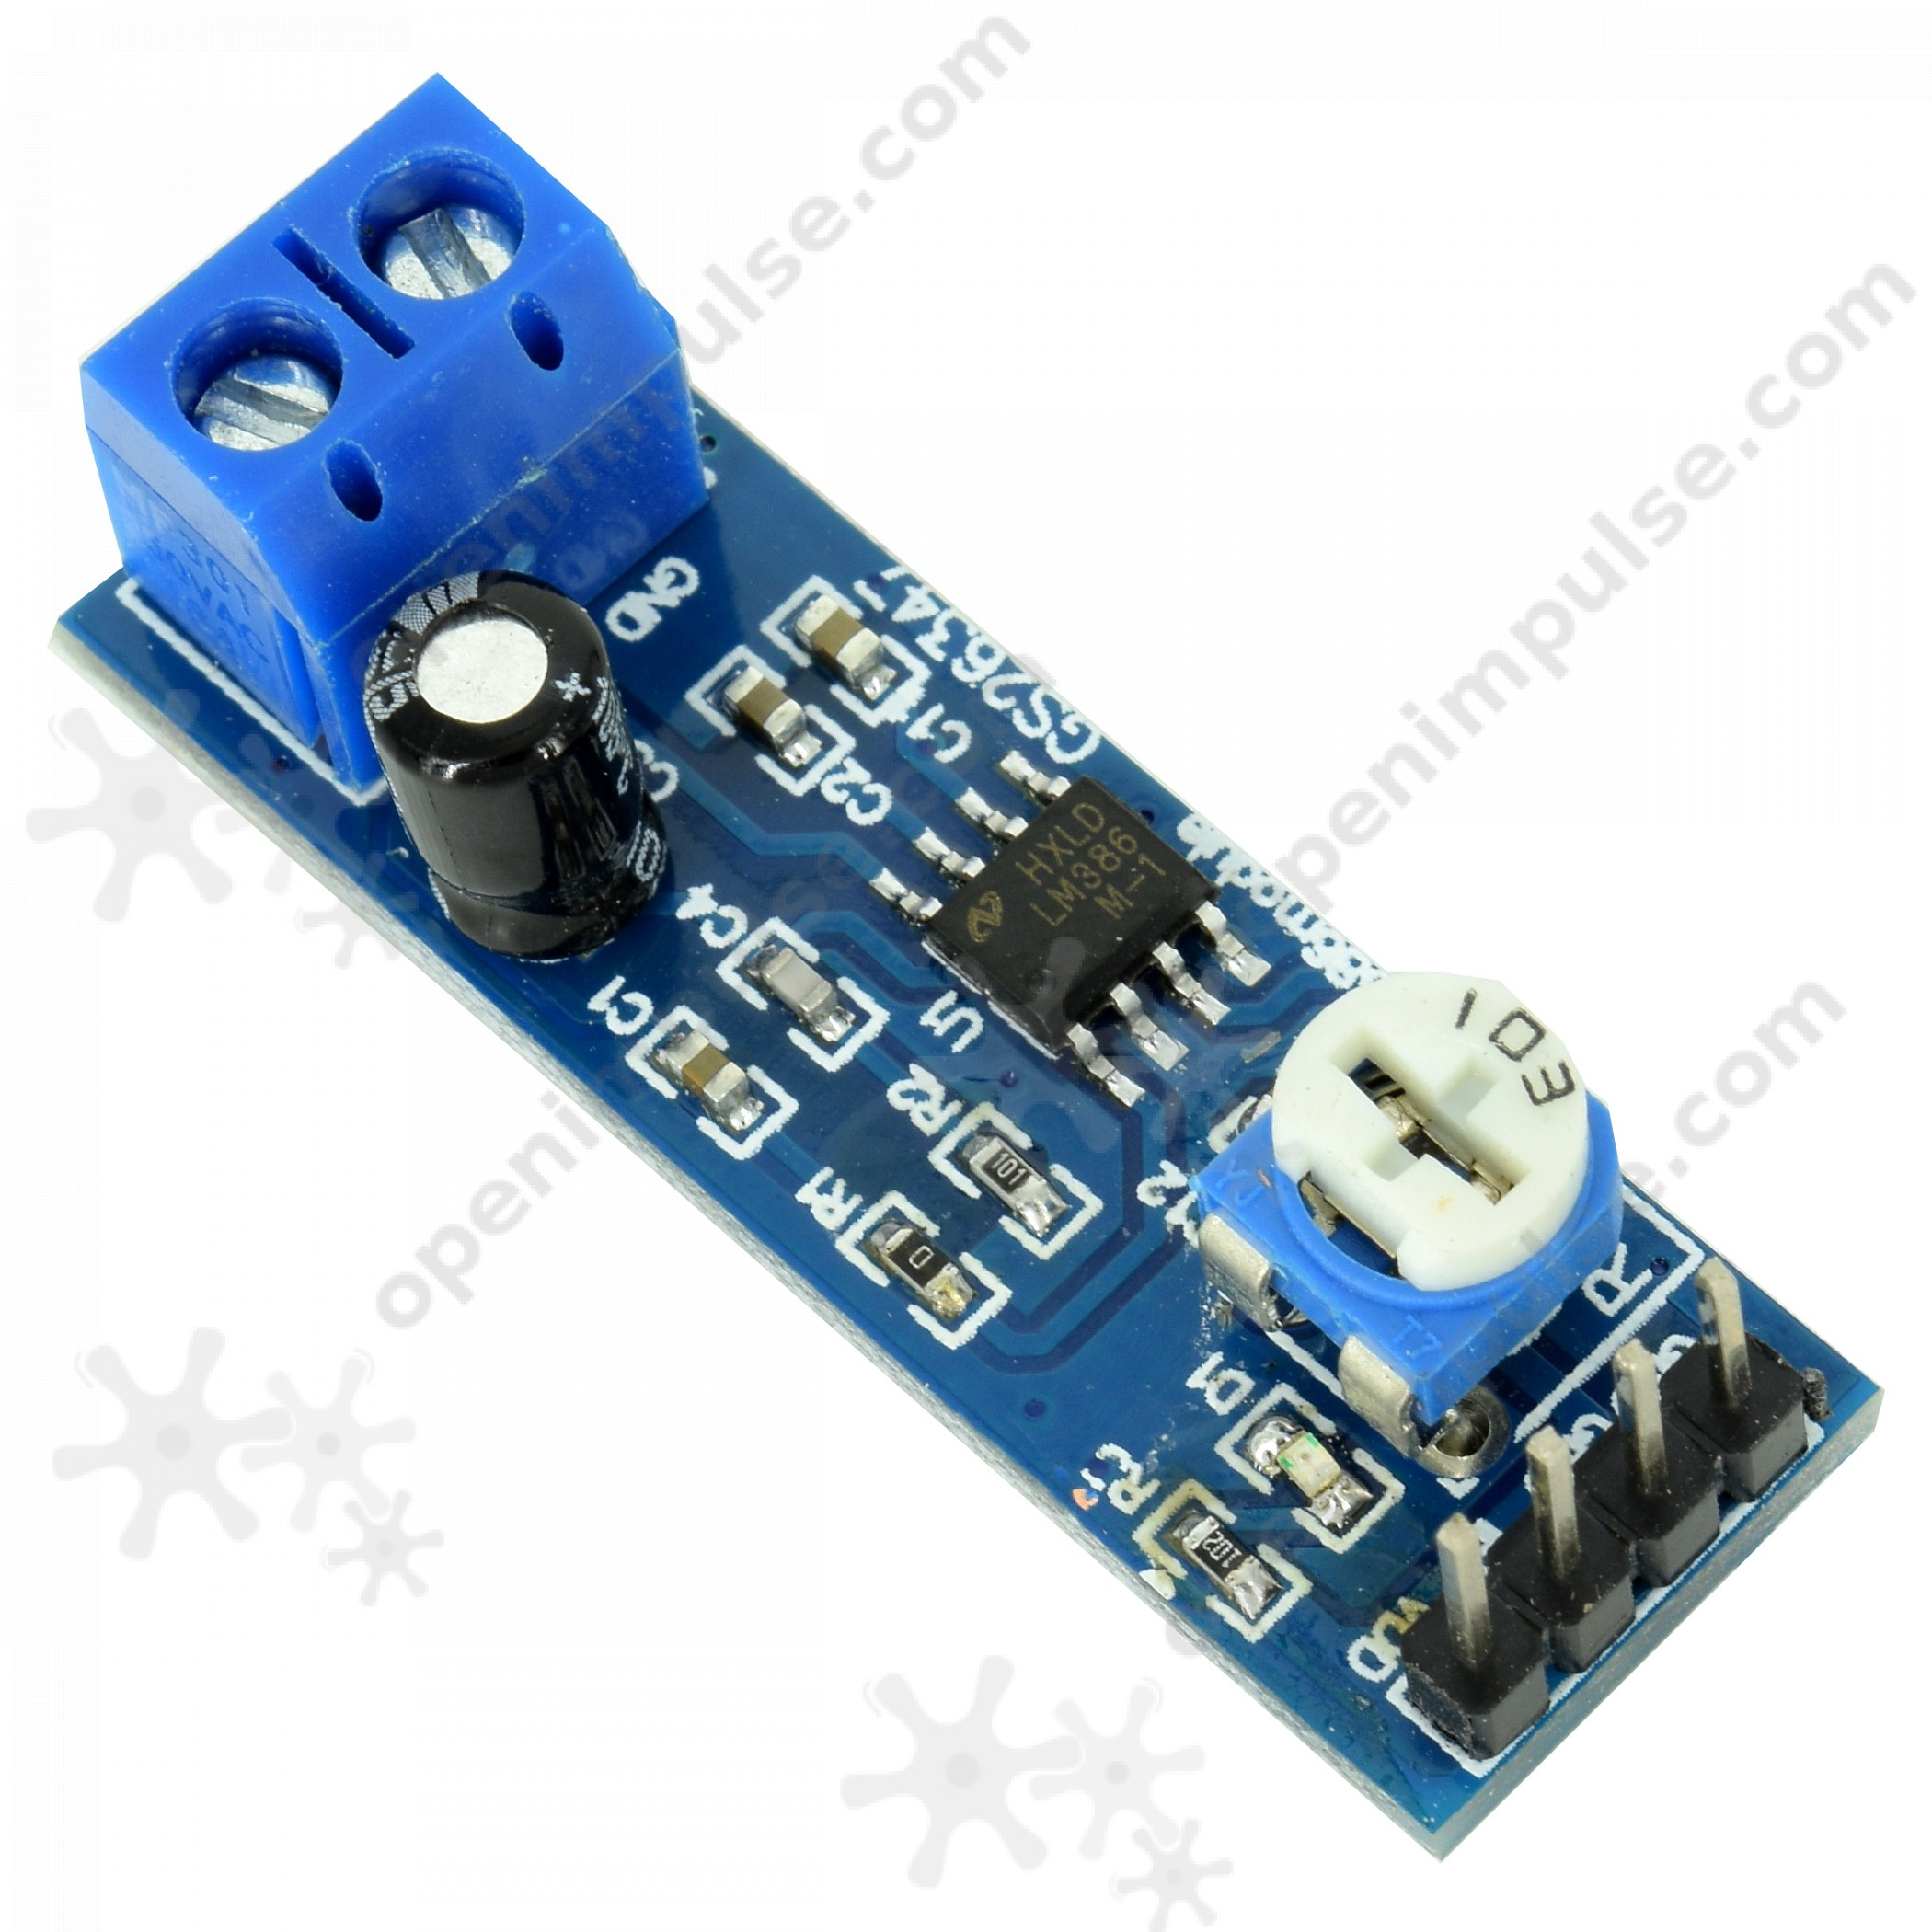 2pcs Lm386 Audio Amplifier 200x Open Impulseopen Impulse Working Operation Of Ic 4 The